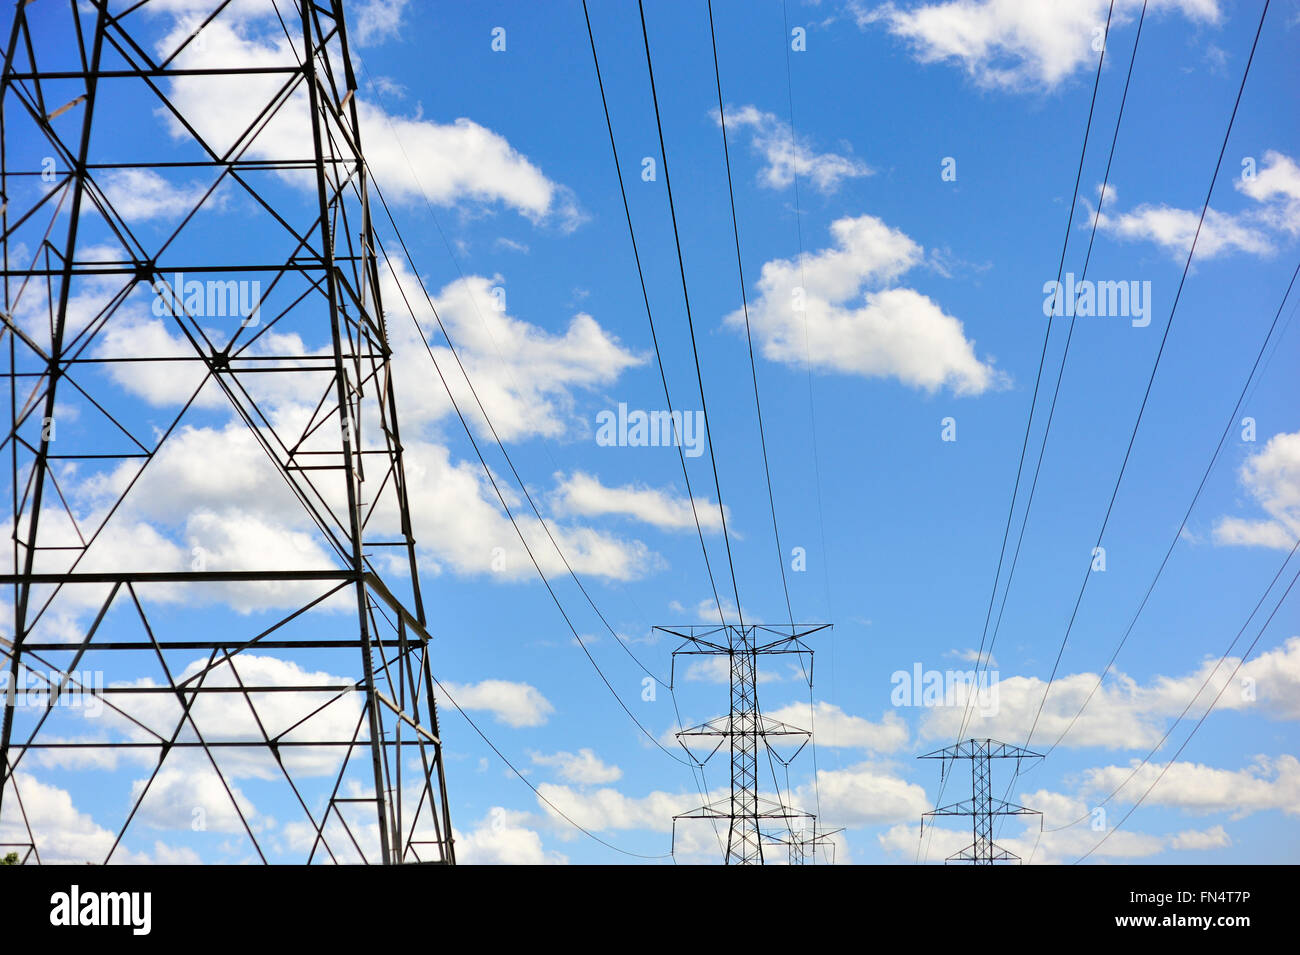 High tension power lines provide reliable service to the suburban Chicago area. Wayne, Illinois, USA. Stock Photo